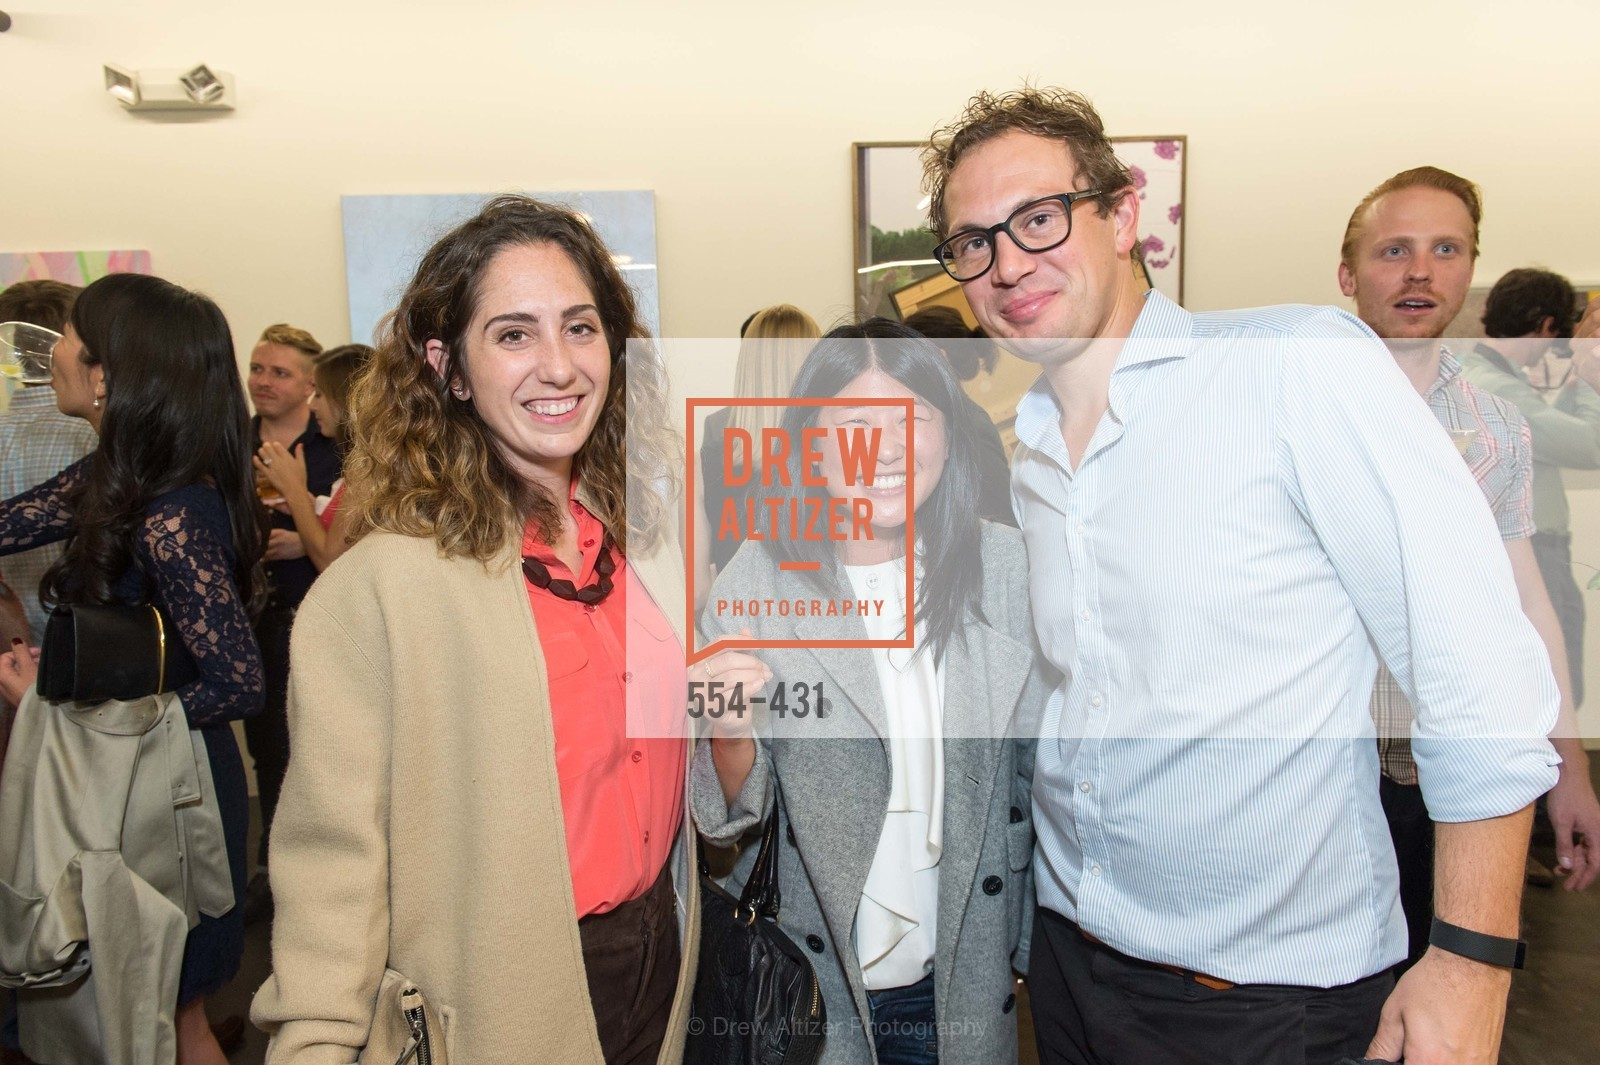 Cassidy Luithen, Nikki Meng, Chris Renner, Artsy + Sotheby's Closing Party, Fused. 1401 16th Street, October 30th, 2015,Drew Altizer, Drew Altizer Photography, full-service agency, private events, San Francisco photographer, photographer california